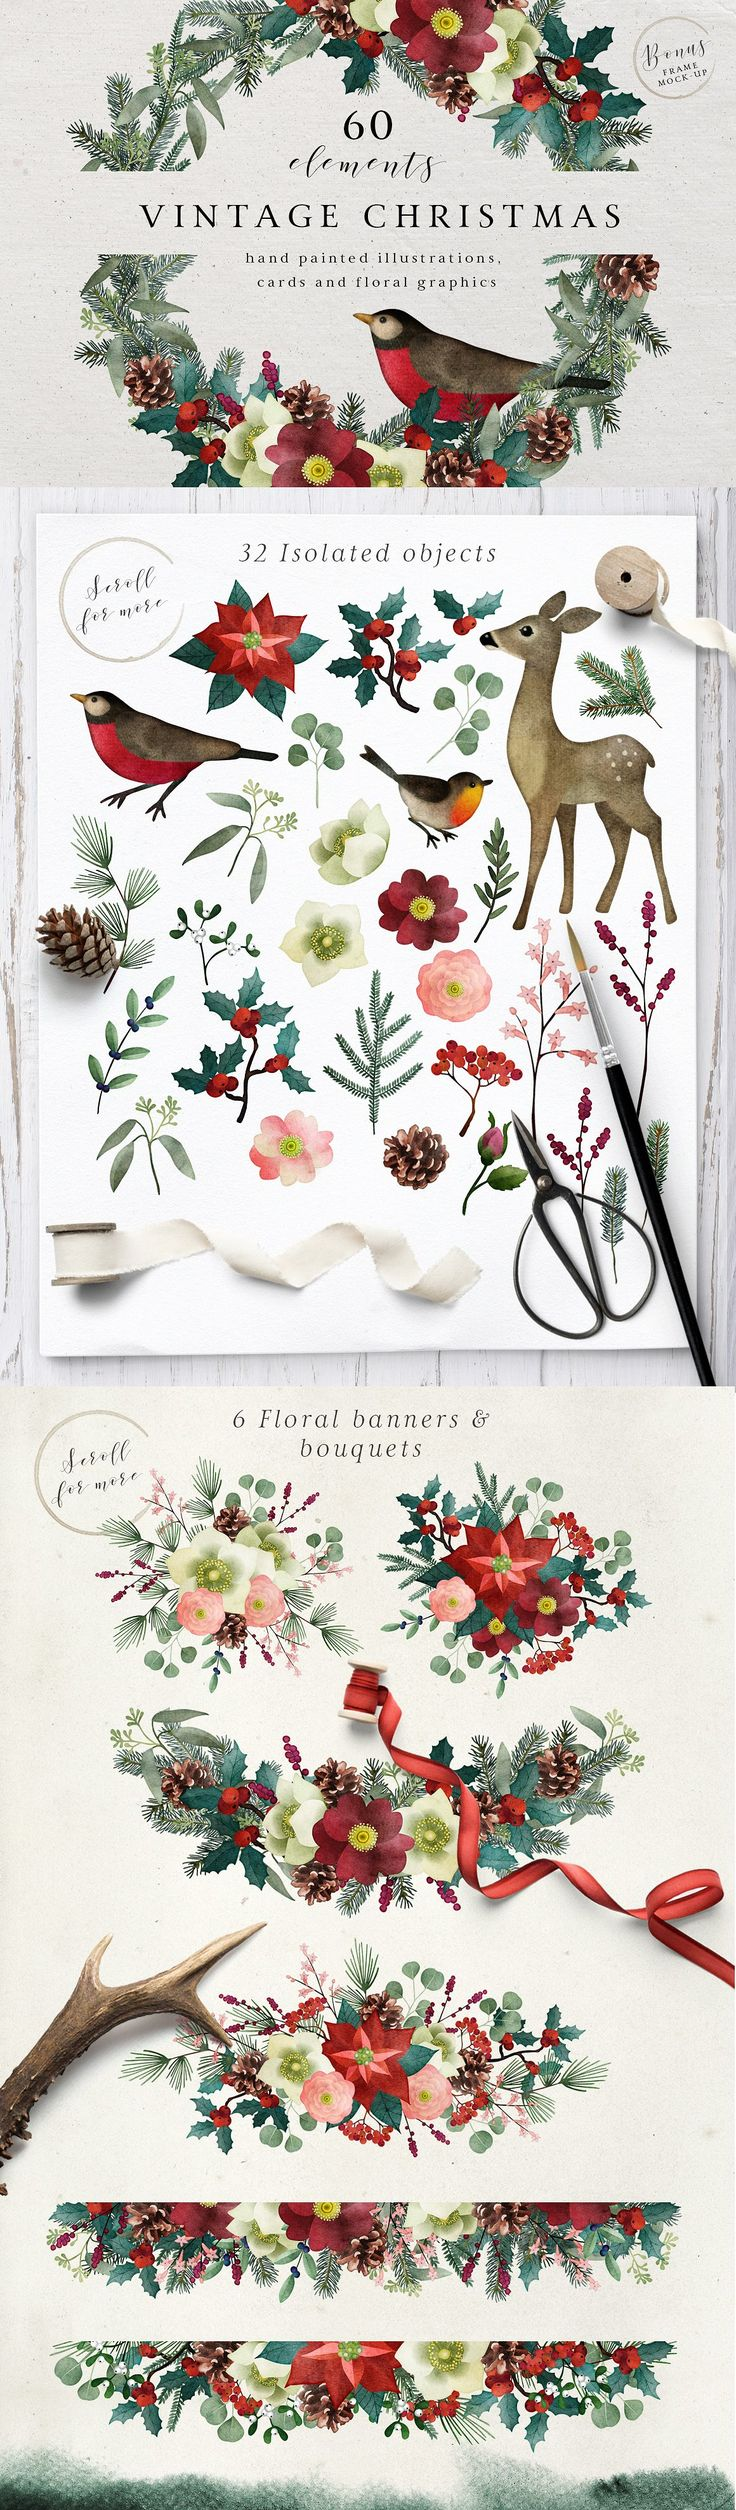 Vintage Christmas watercolor set by Tabita's shop on @creativemarket #christmas #handpainted #ad